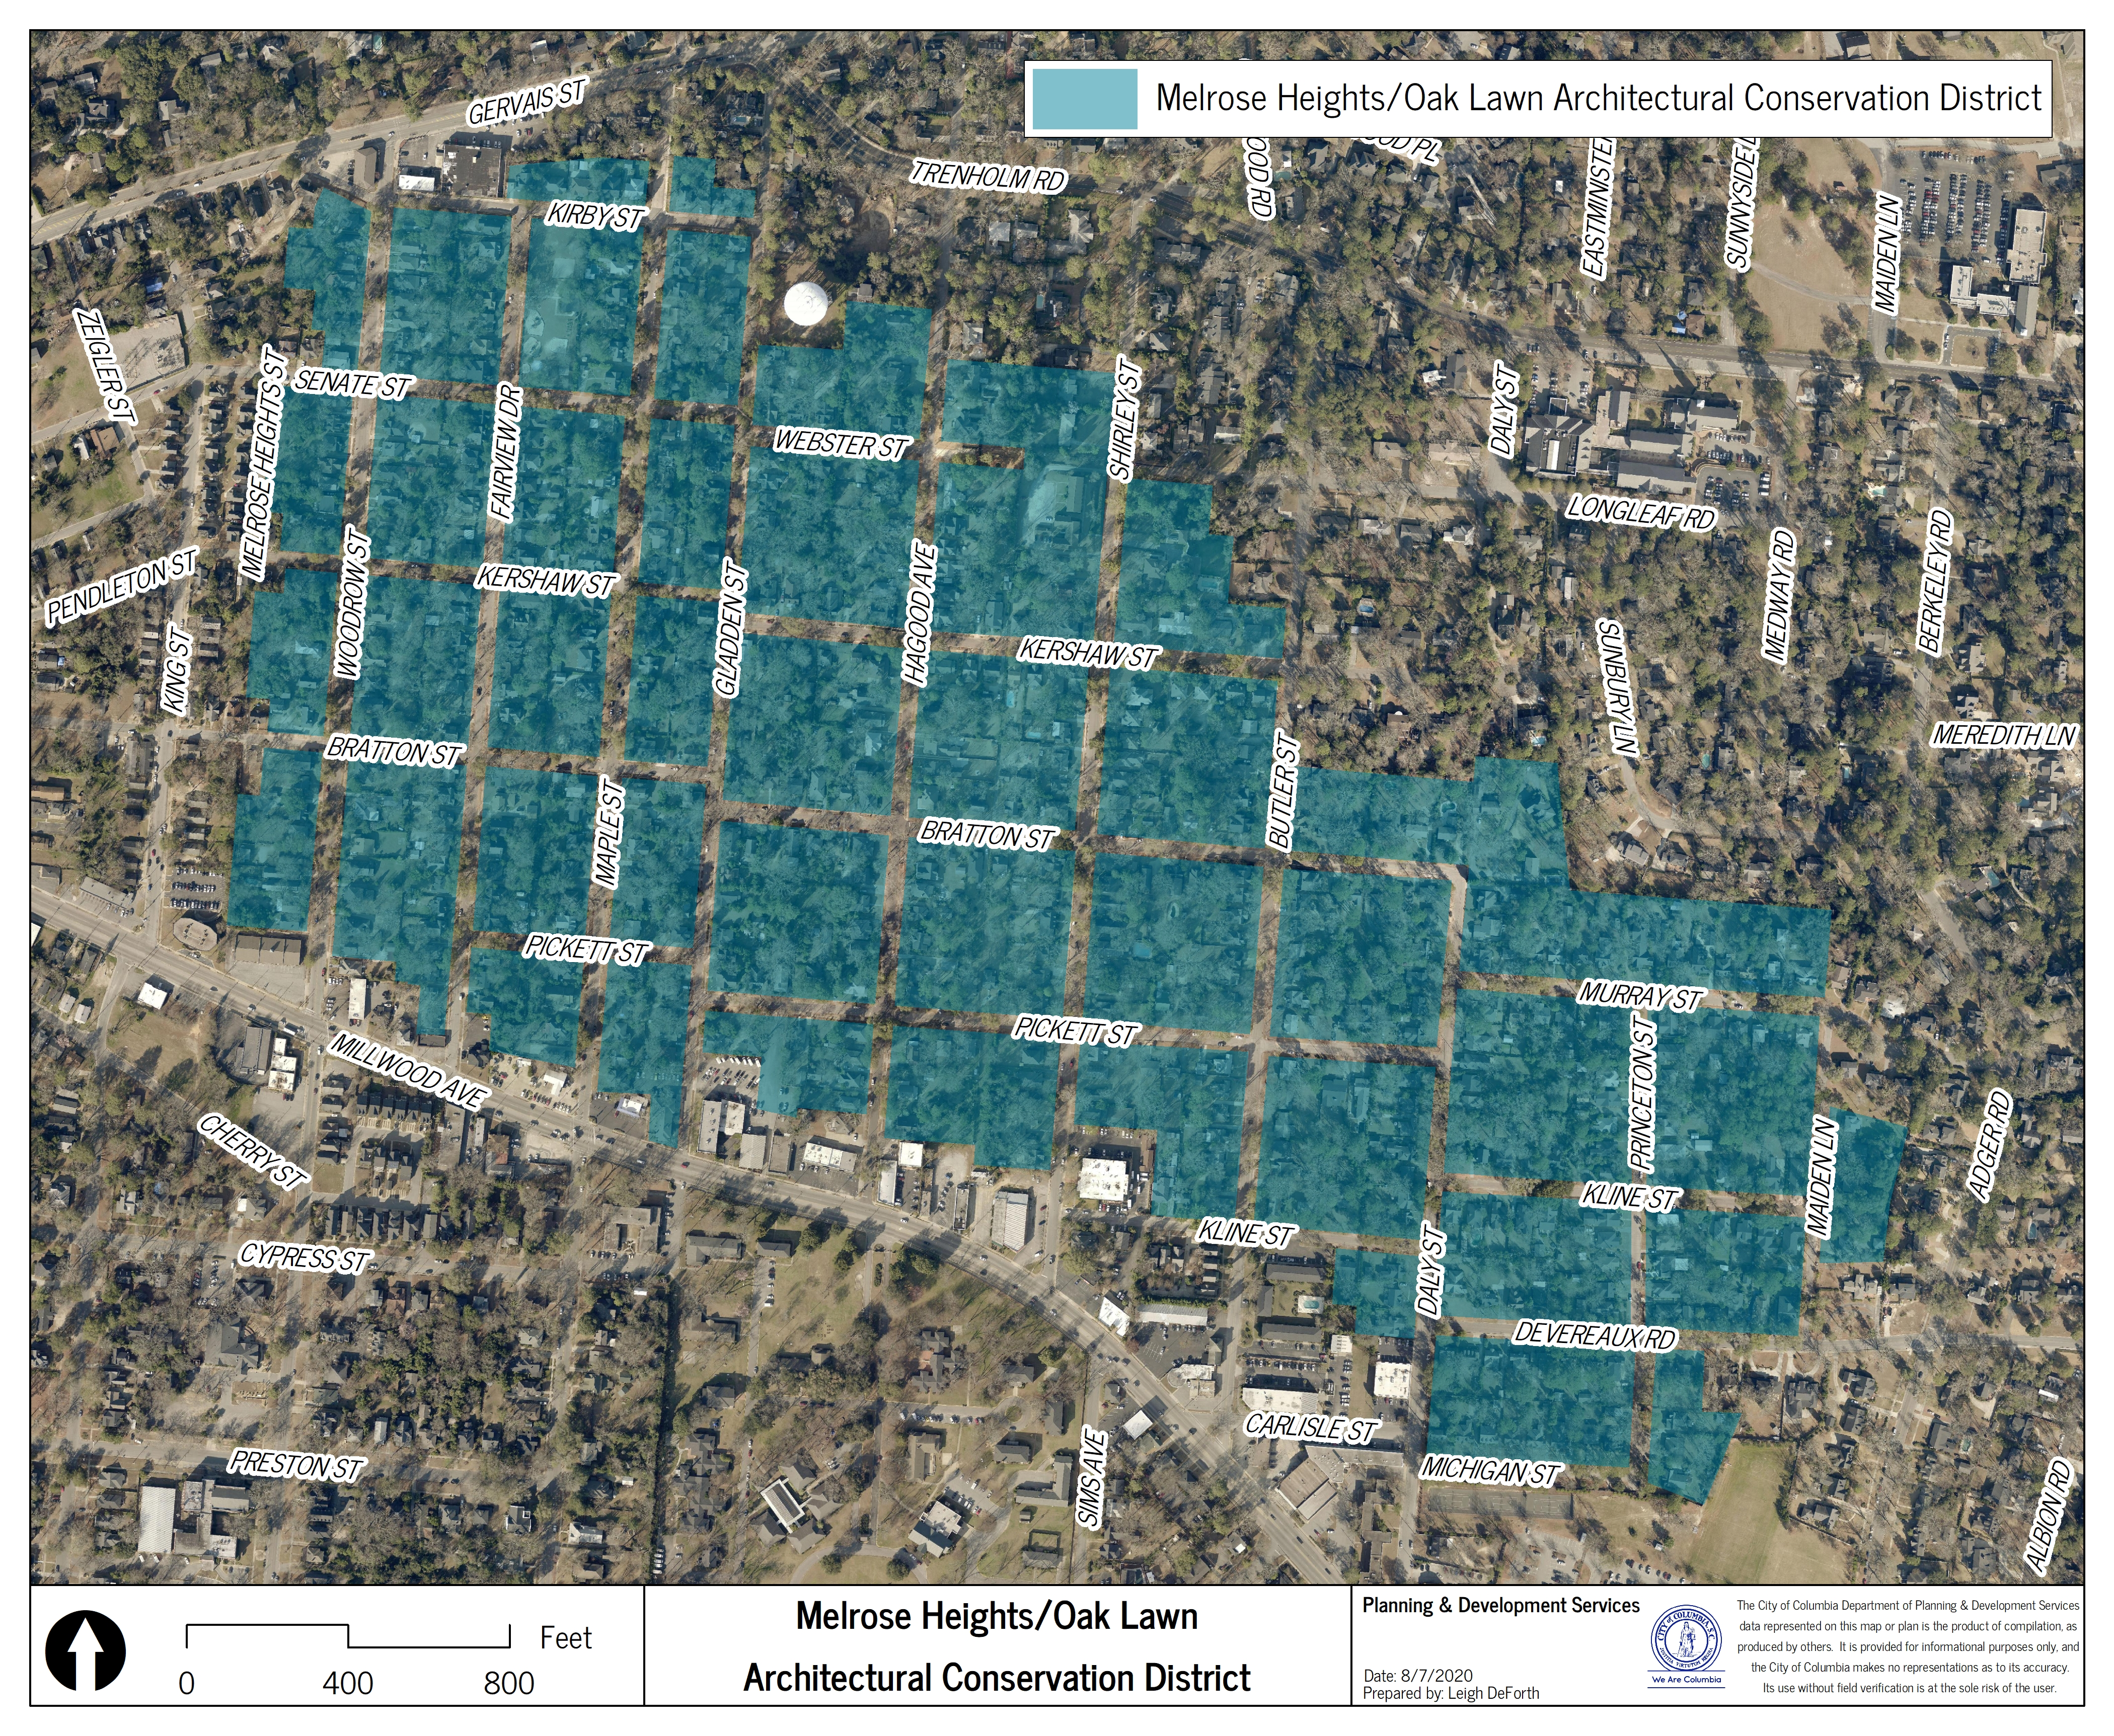 Map of Melrose Heights/Oak Lawn Architectural Conservation District